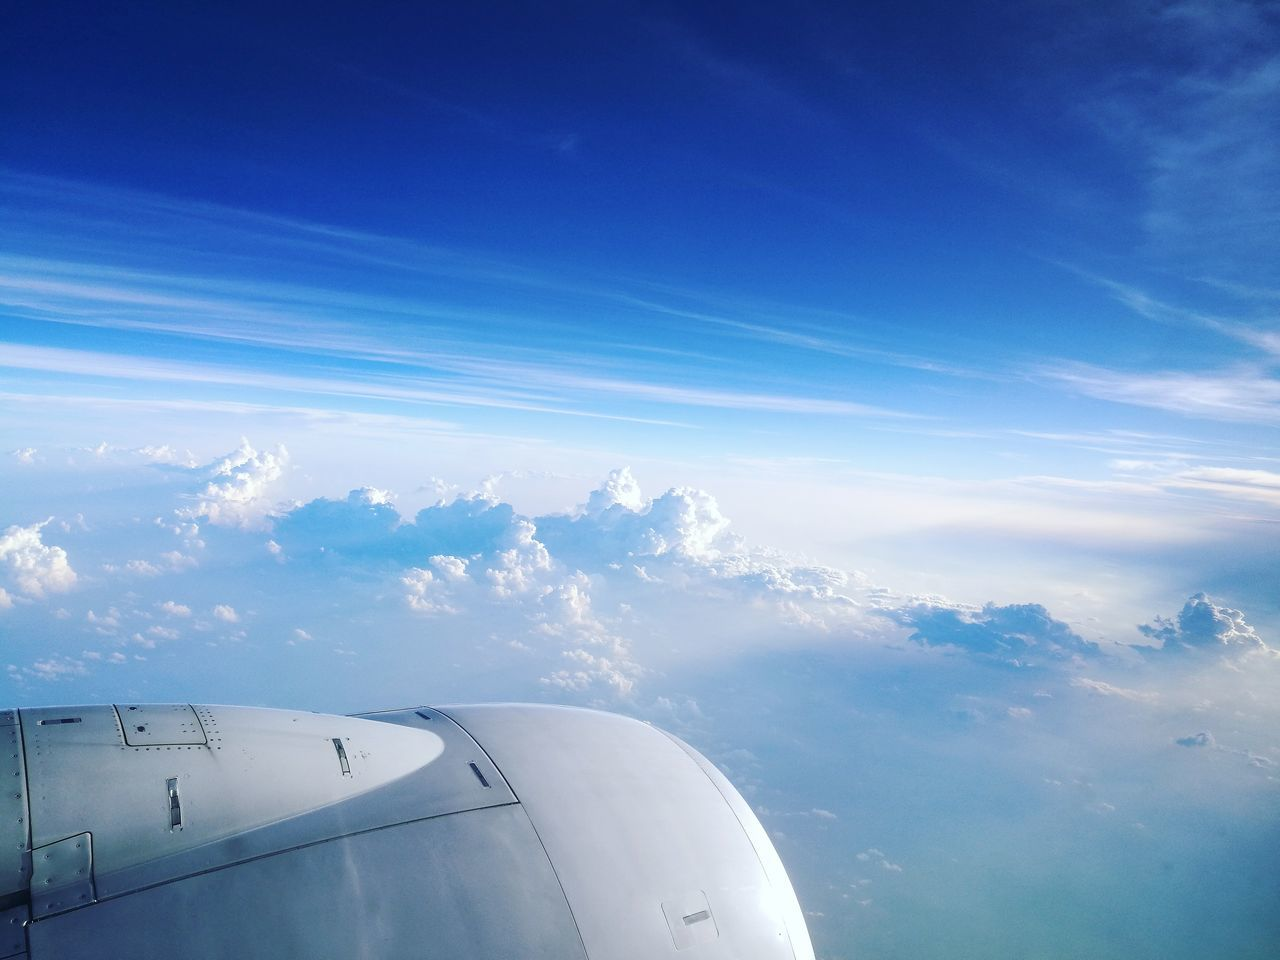 Cotton candy... Cottoncandyclouds Cottonclouds Cloudporn Skyporn Blue Sky Horizon Wingshot Turbine InTheSky Above The Clouds Frequentflyer